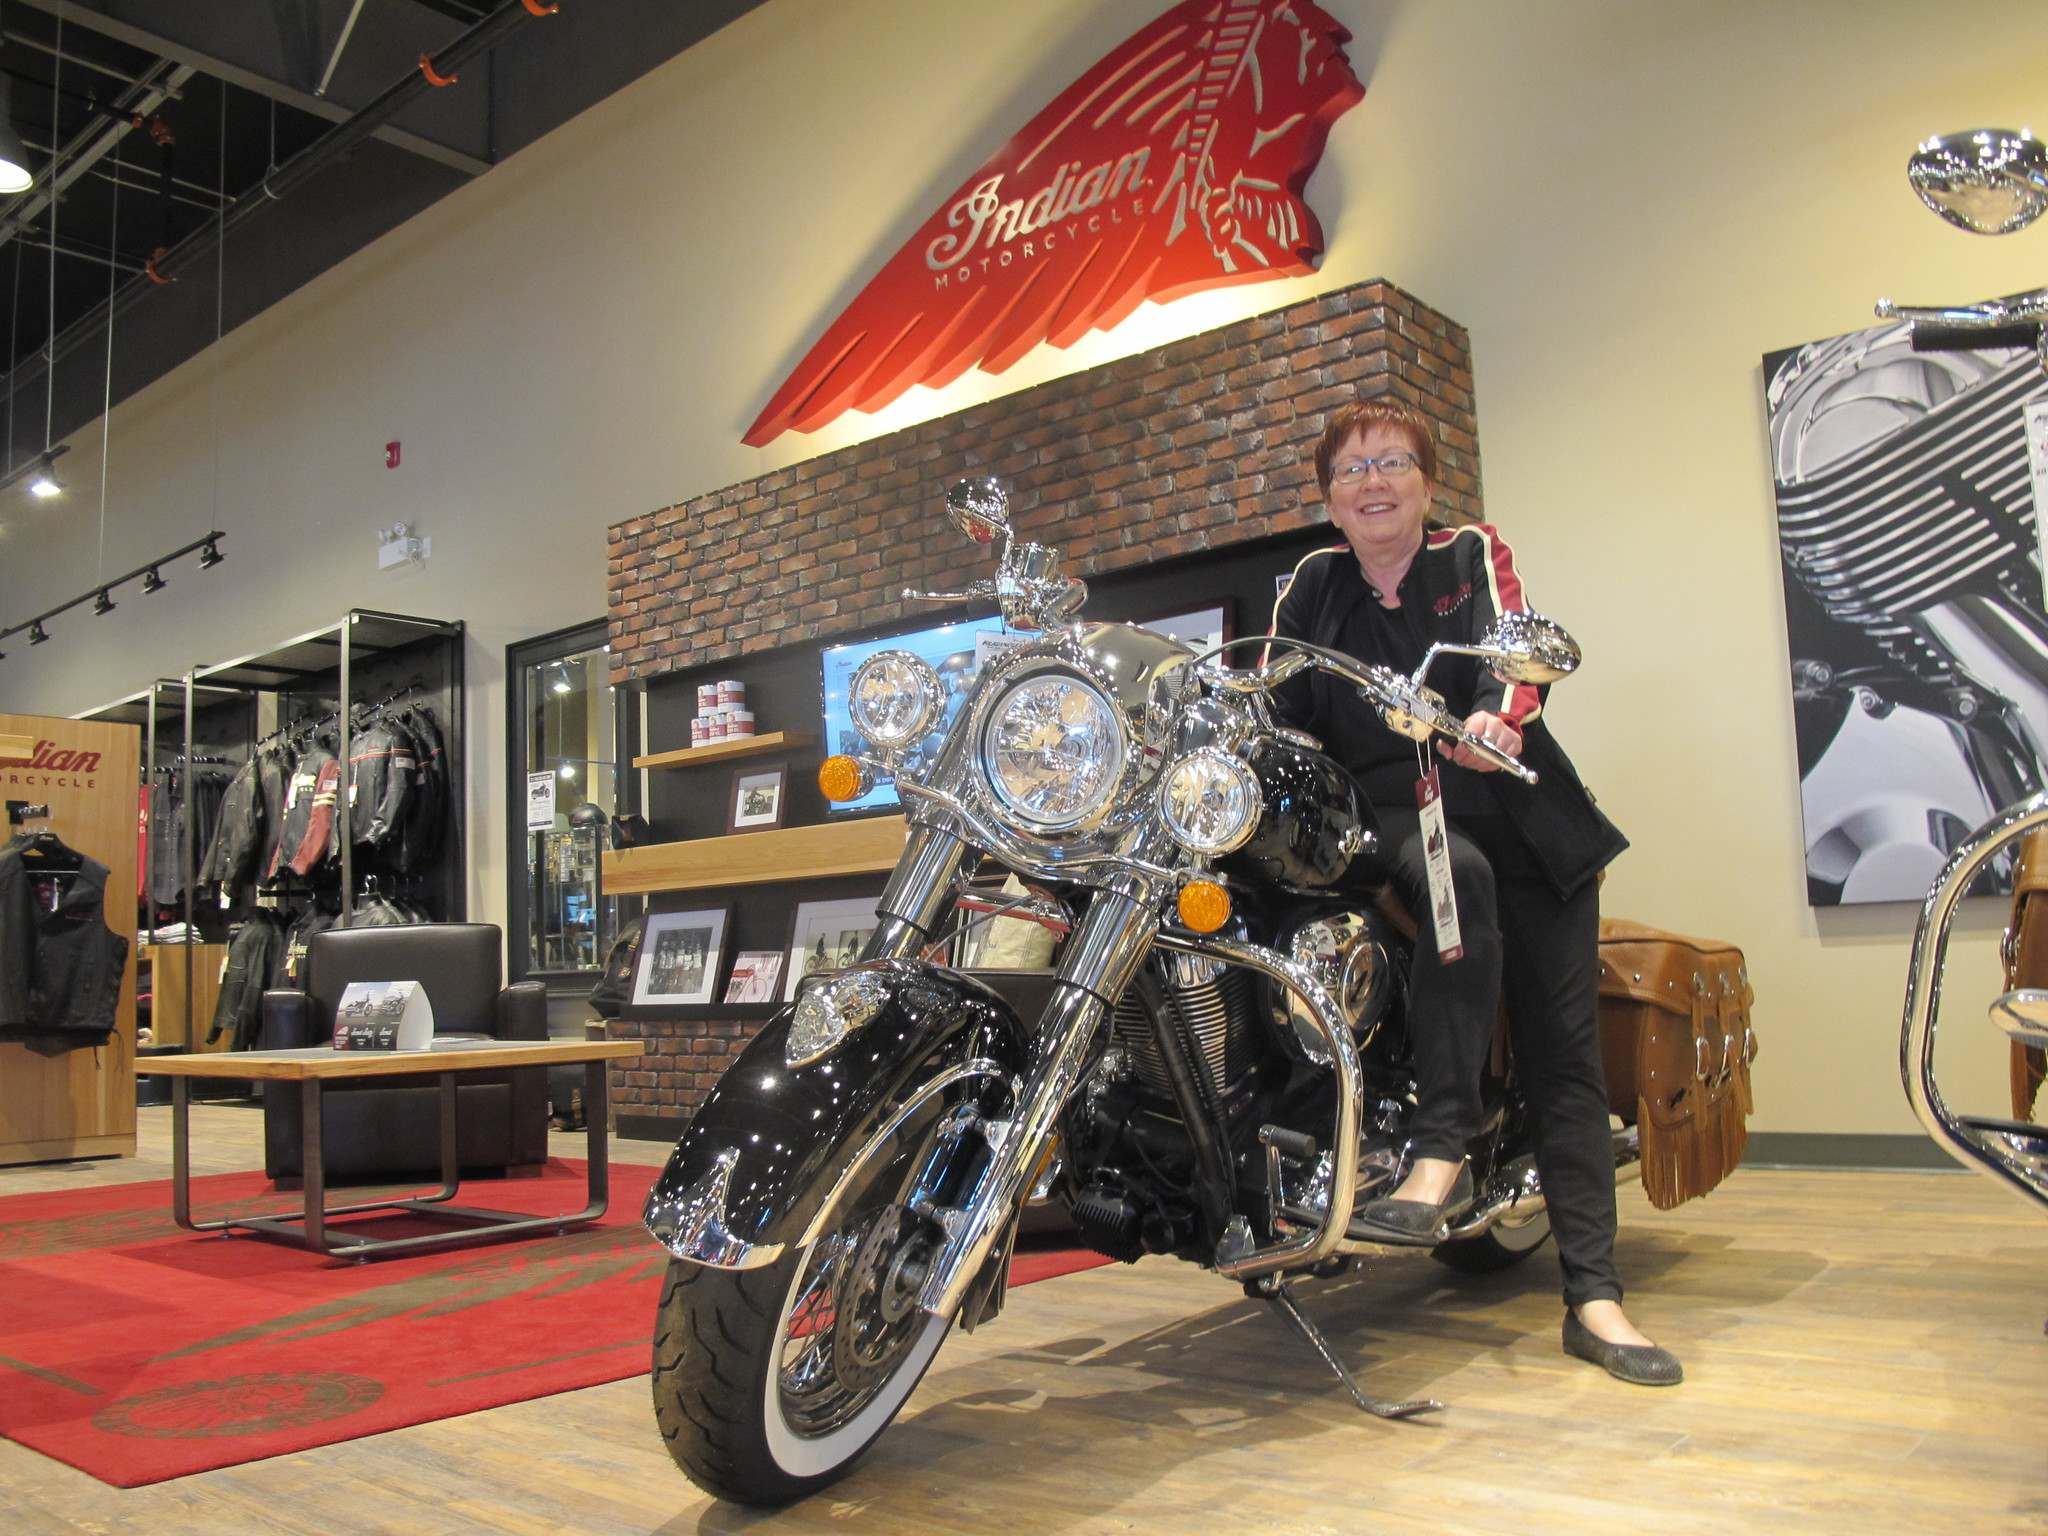 Willy Williamson / Winnipeg Free PressJill Ruth of Indian Motorcycle of Winnipeg.